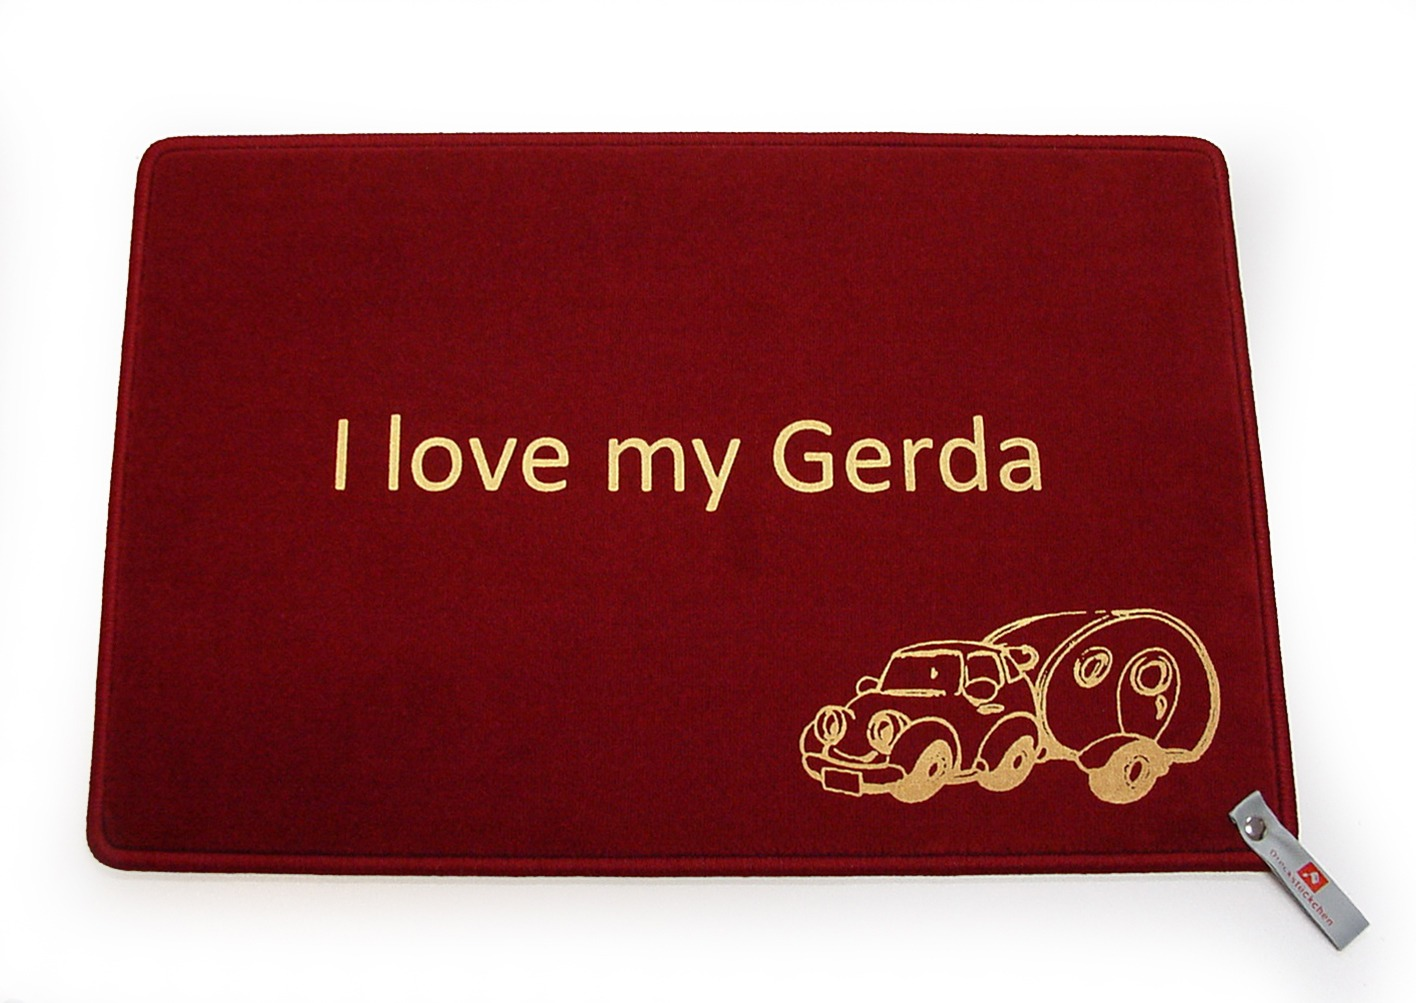 I love my Gerda